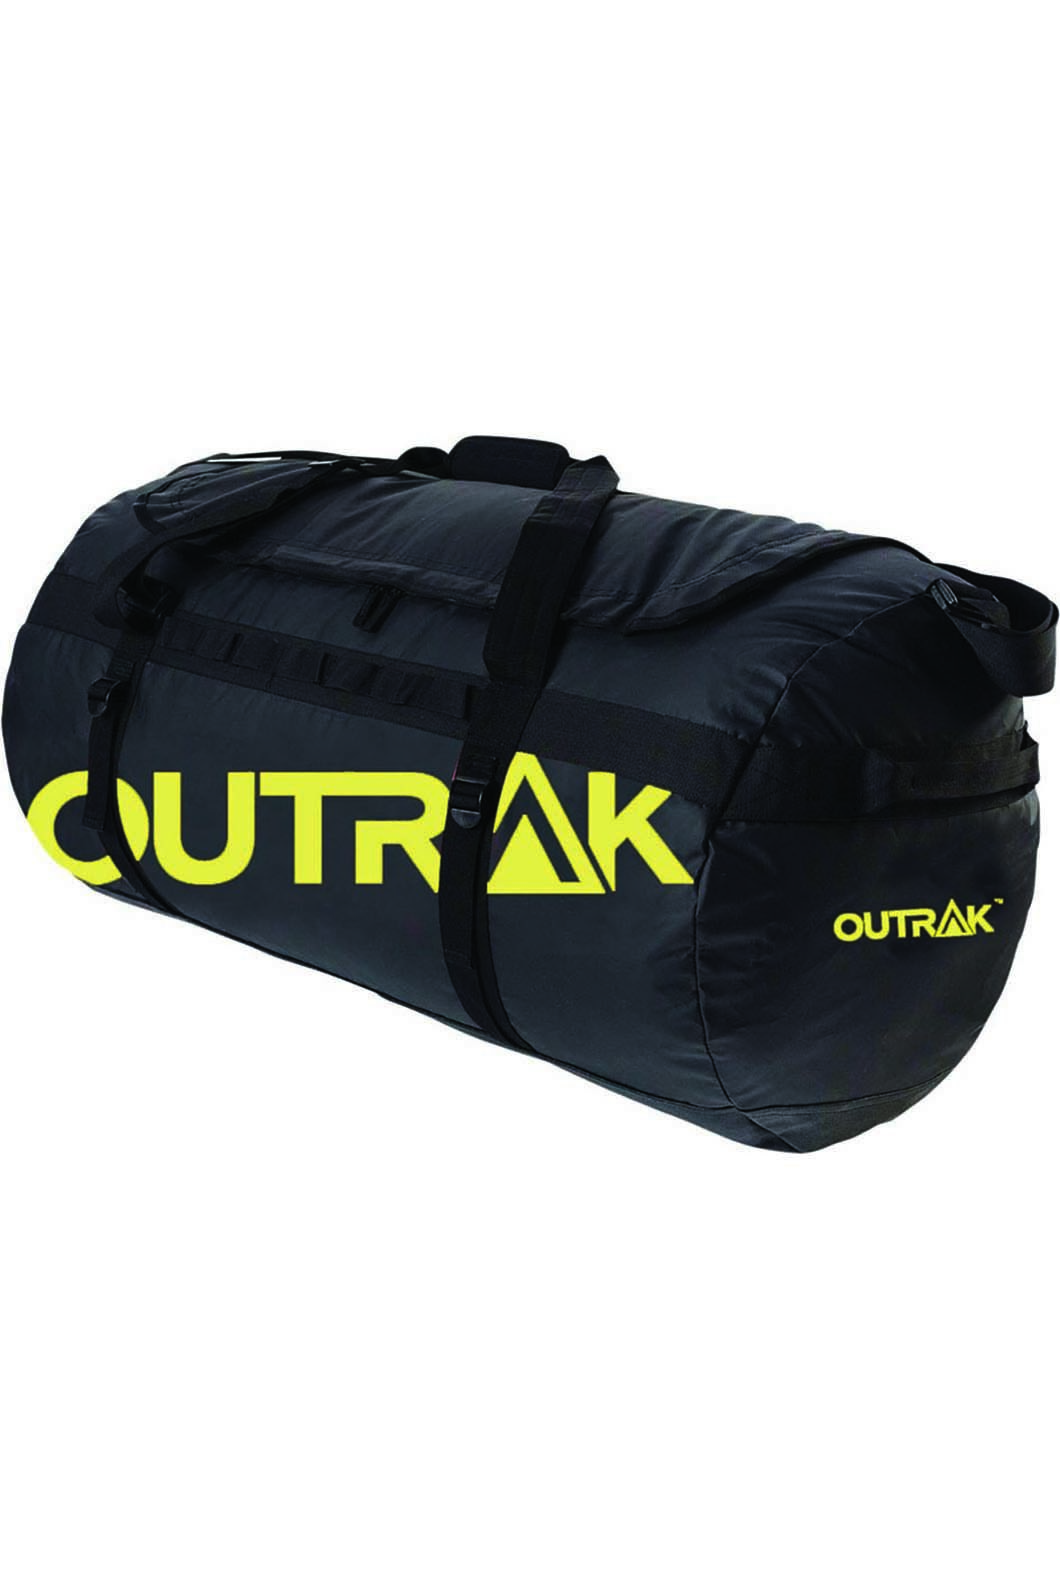 Outrak PVC Duffle Bag 55L, None, hi-res